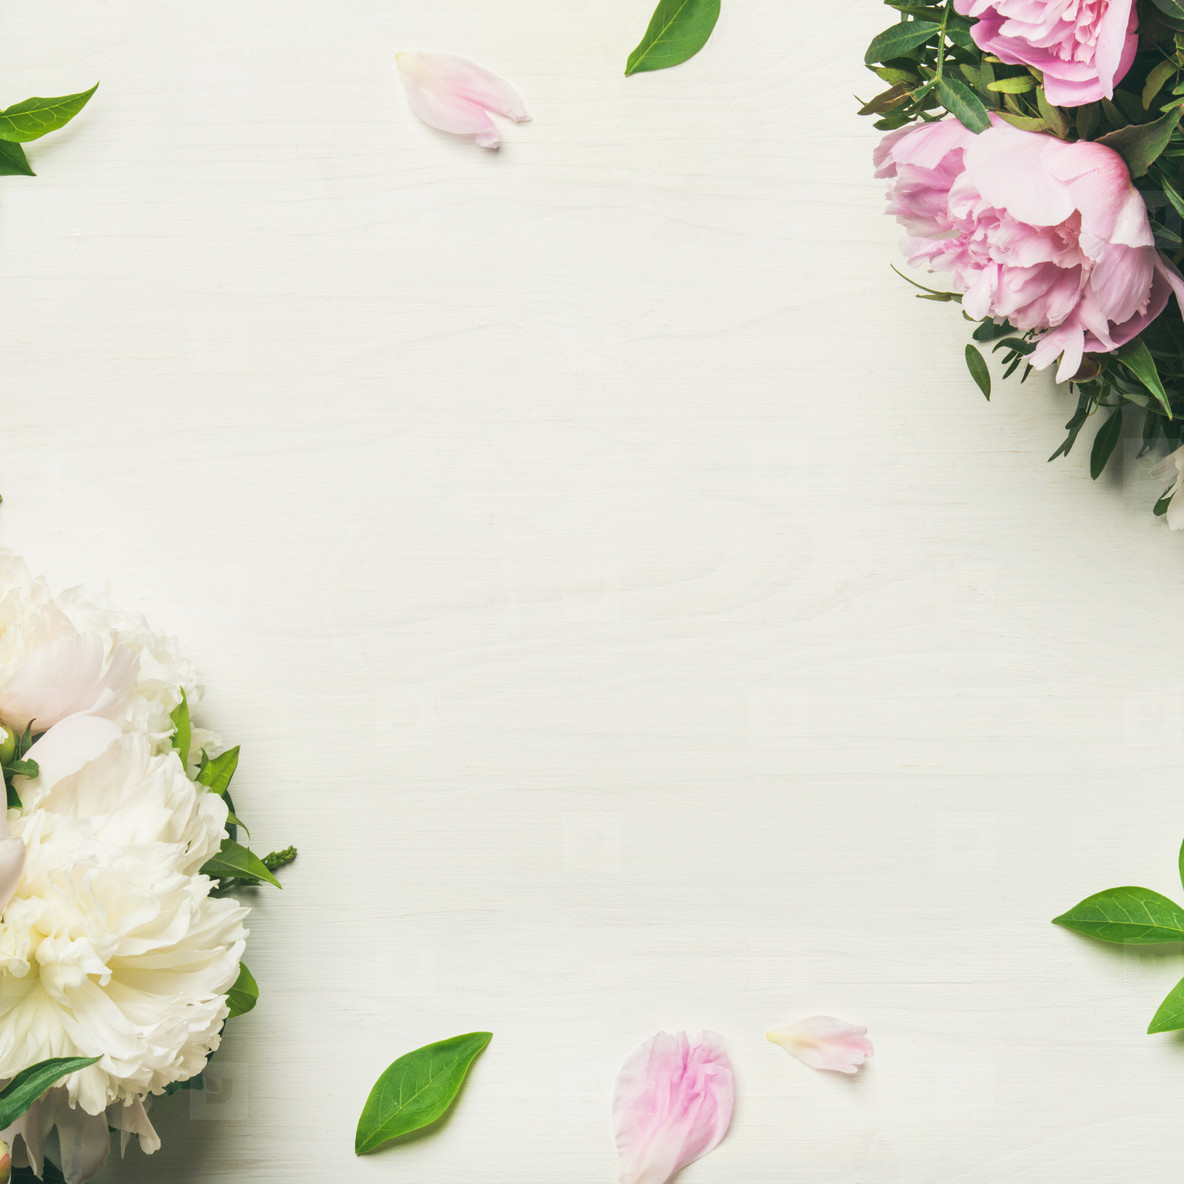 Photos Flat Lay Of Peony Flowers Over White Background Copy Space